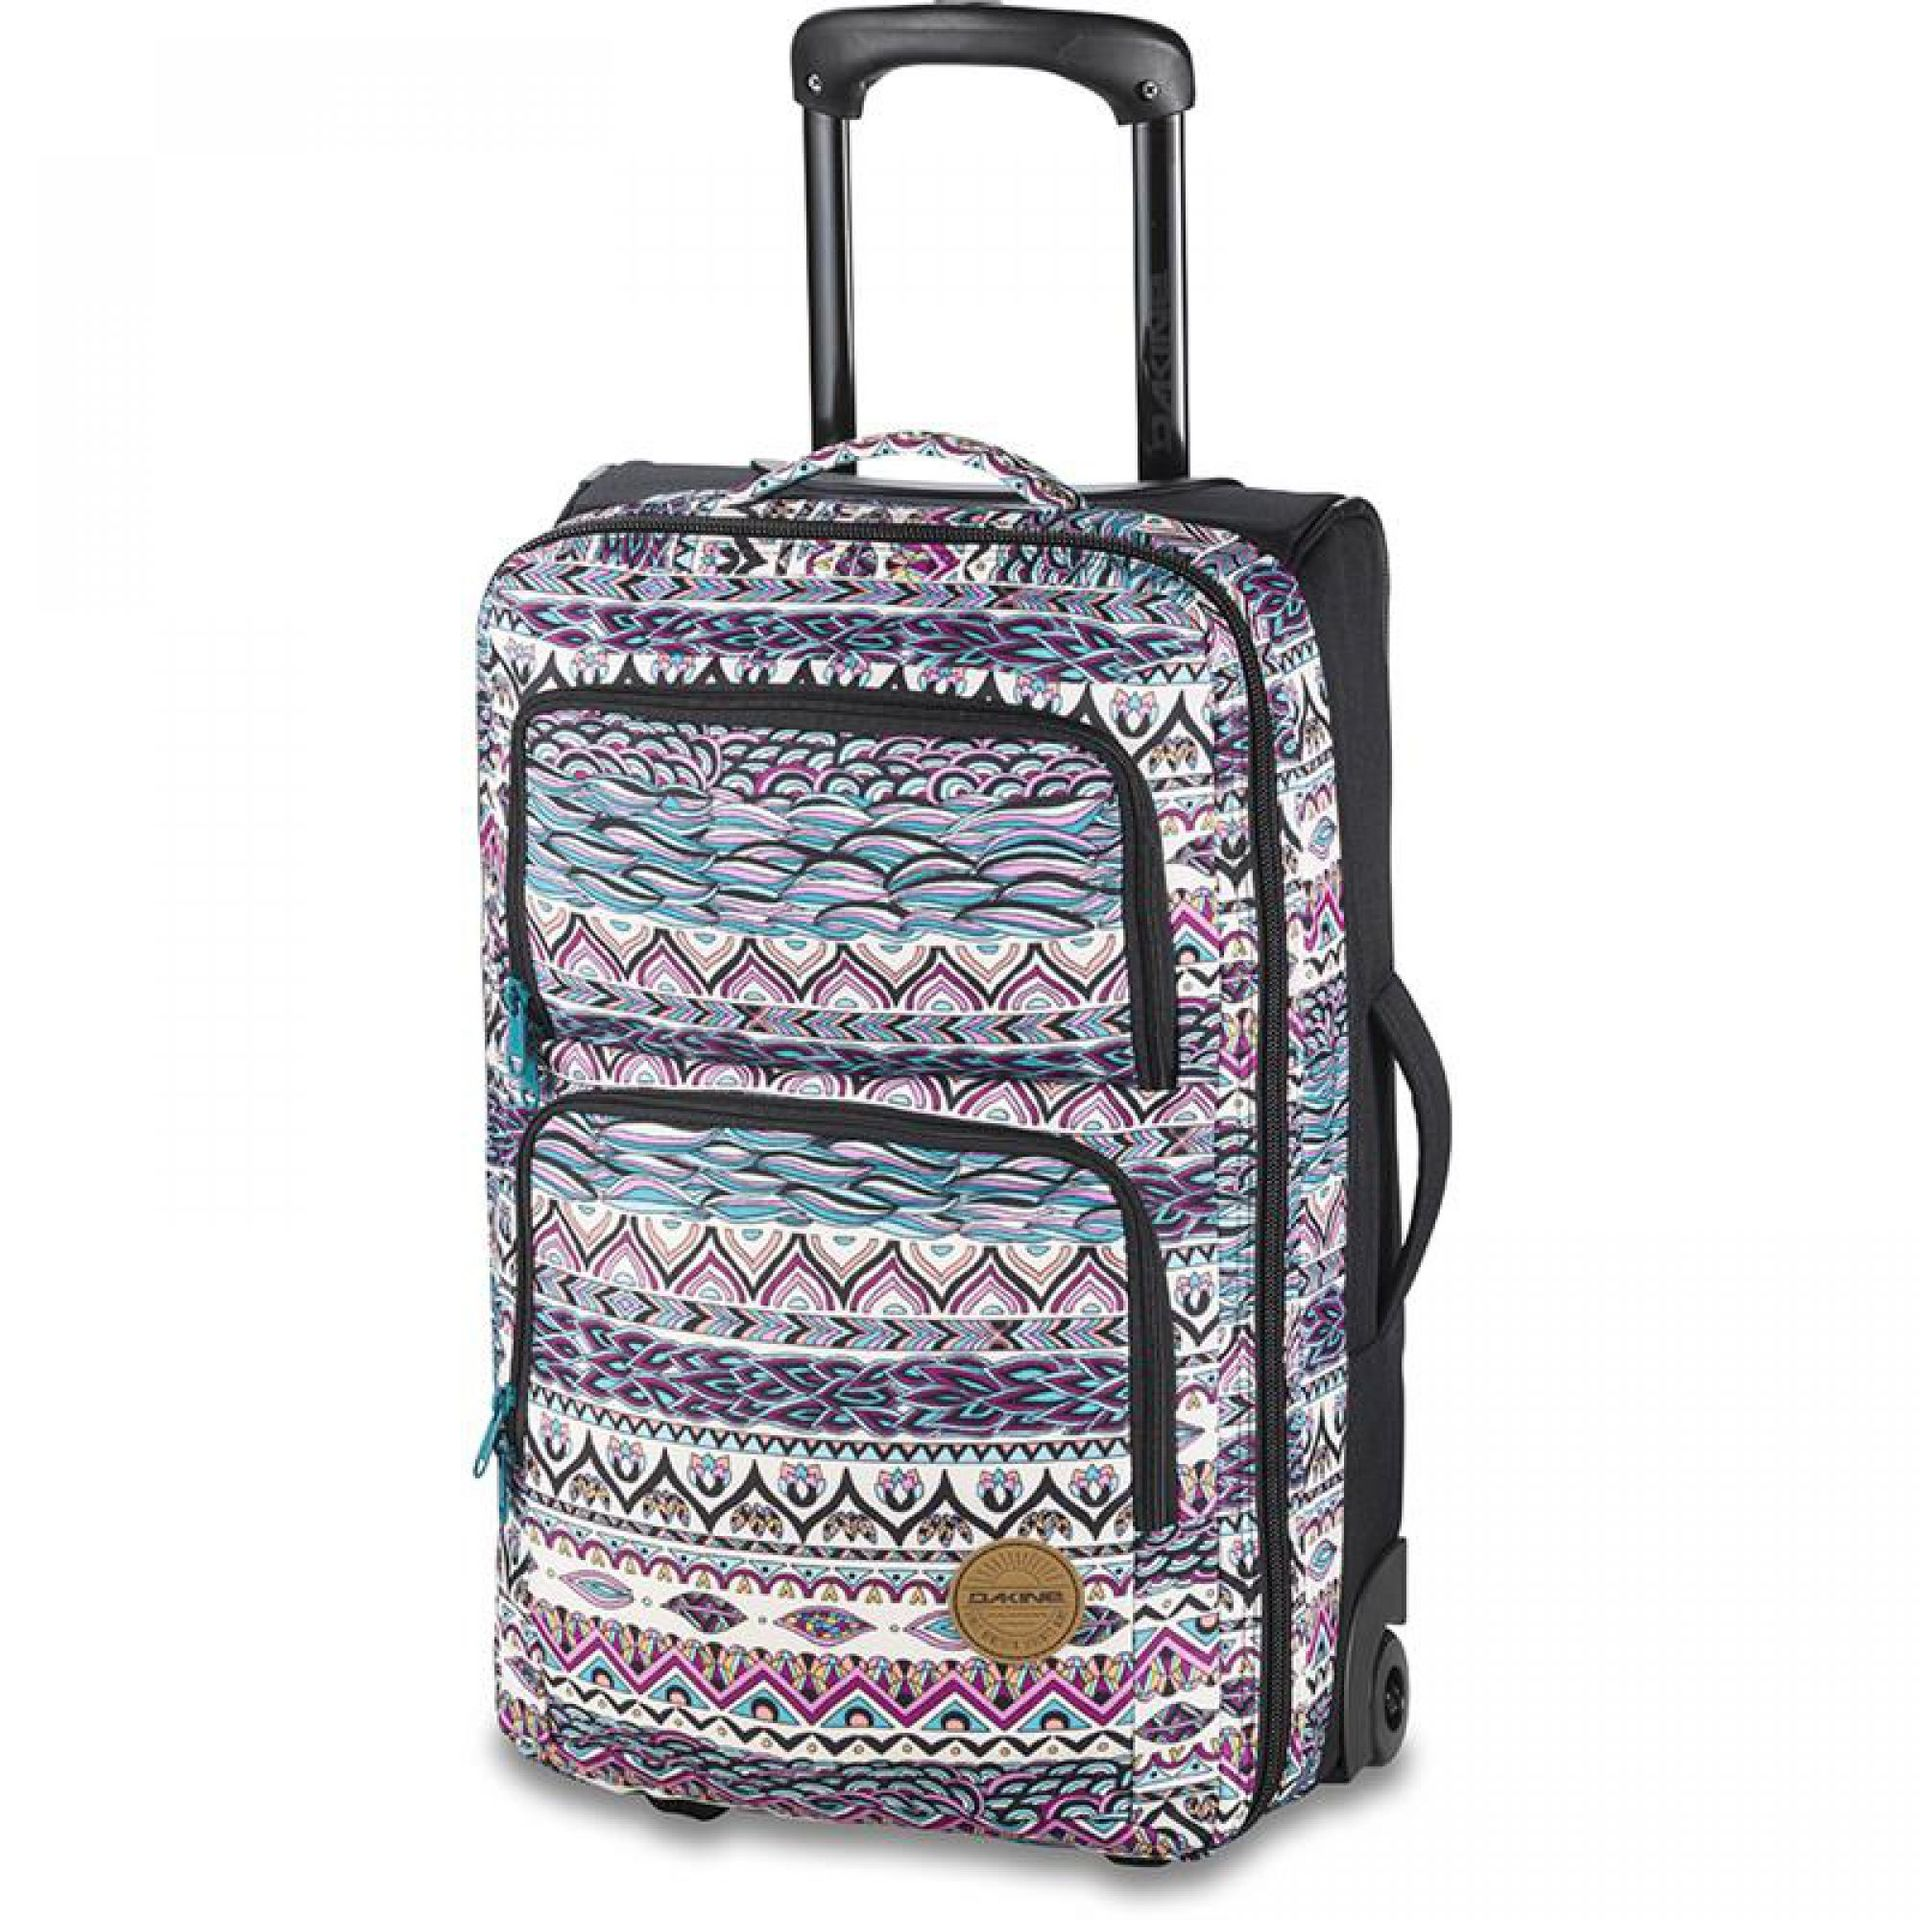 TORBA PODRÓŻNA DAKINE WOMENS CARRY ON ROLLER RHAPSODY II